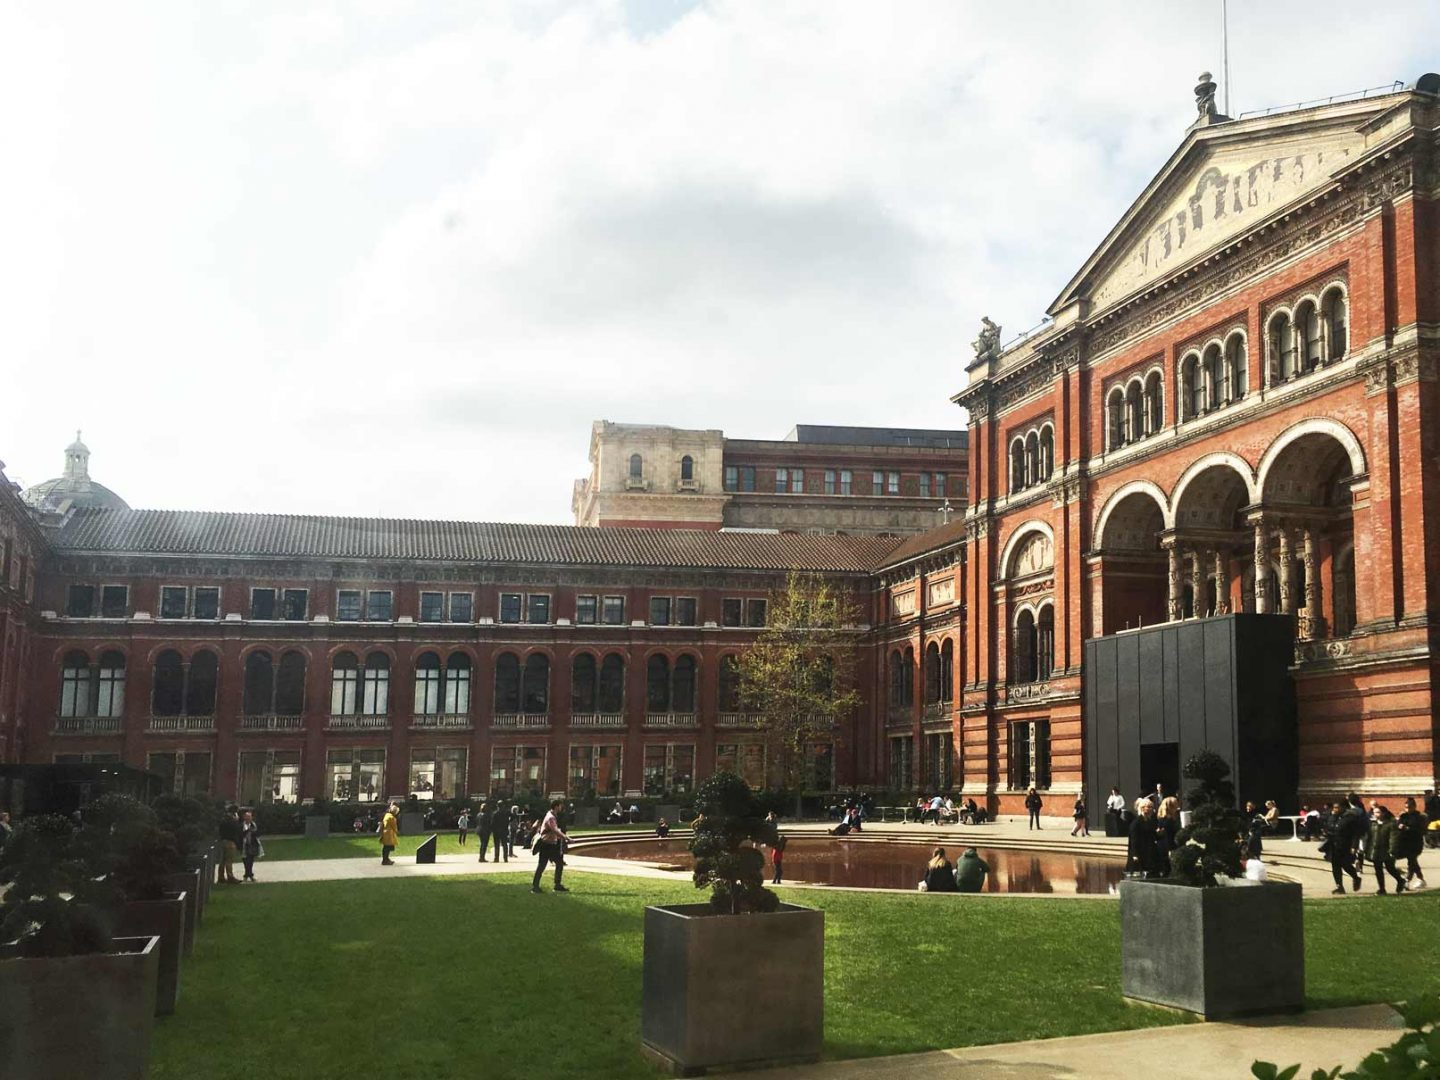 V&A museum's courtyard with a little pond